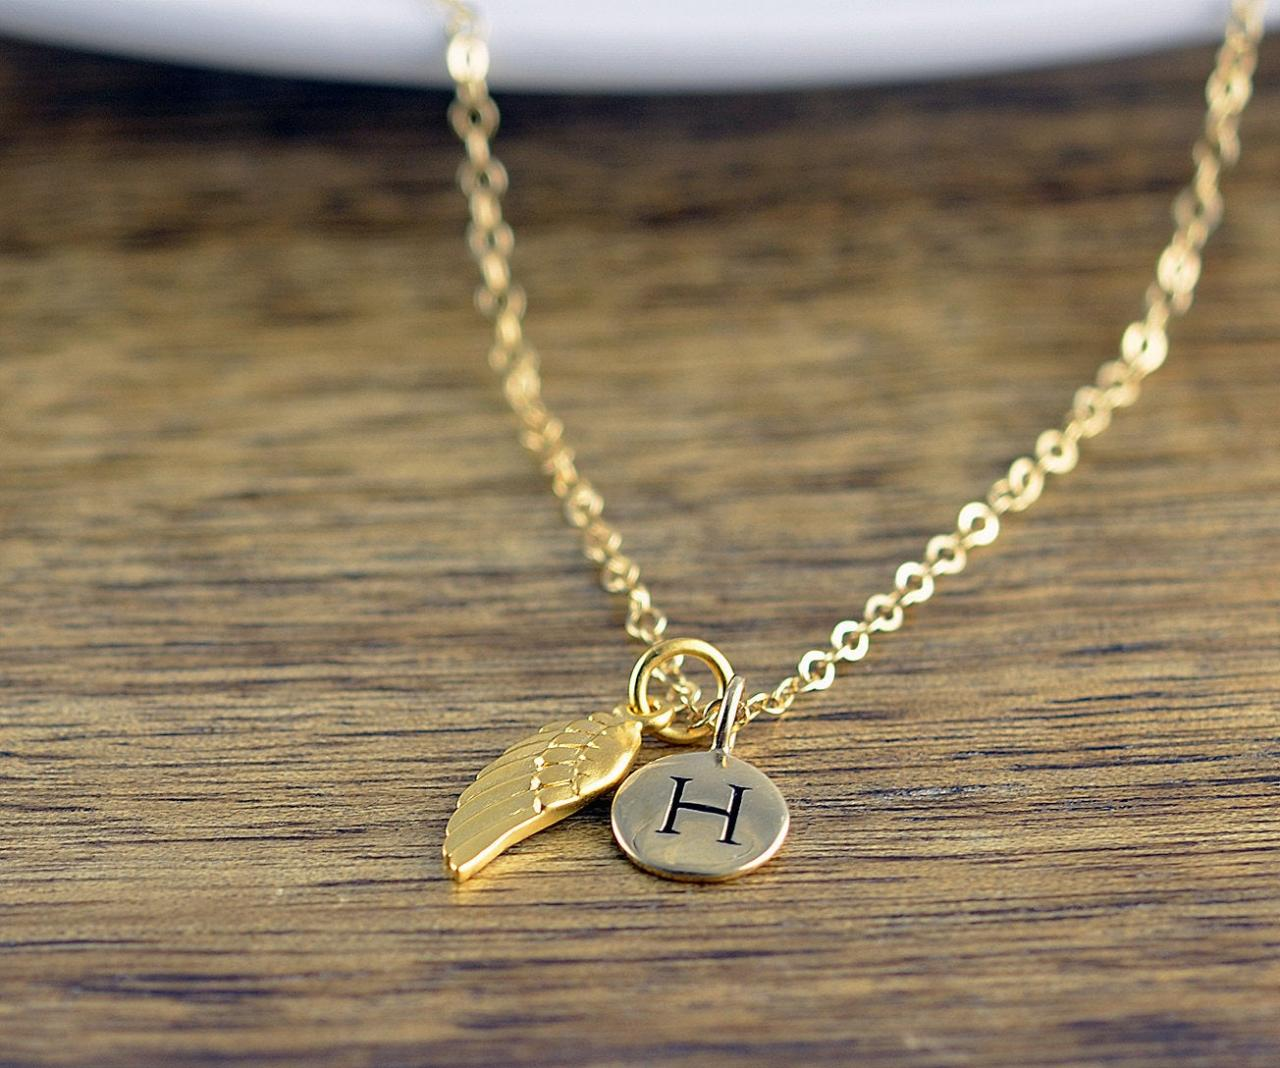 Personalized Wing Necklace - Remembrance Jewelry - Guardian Angel Wing Necklace - Initial Necklace - Infant Loss Necklace - Gold Necklace